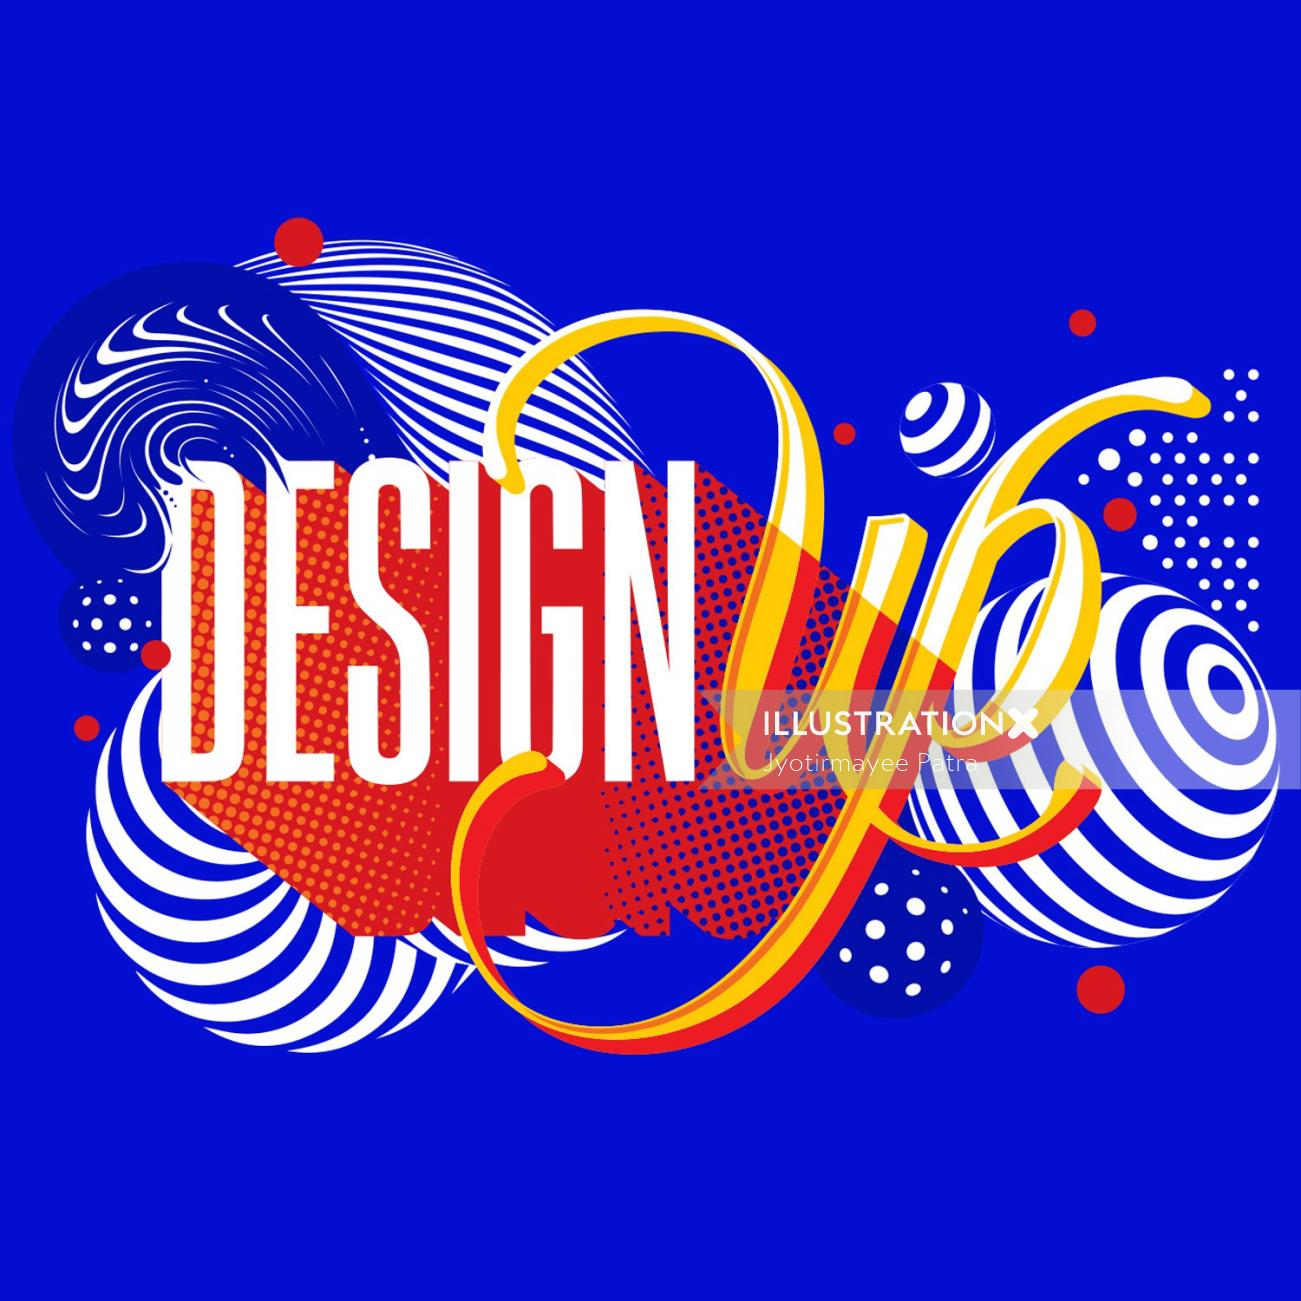 Custom lettering piece created for DesignUp Conference 2018